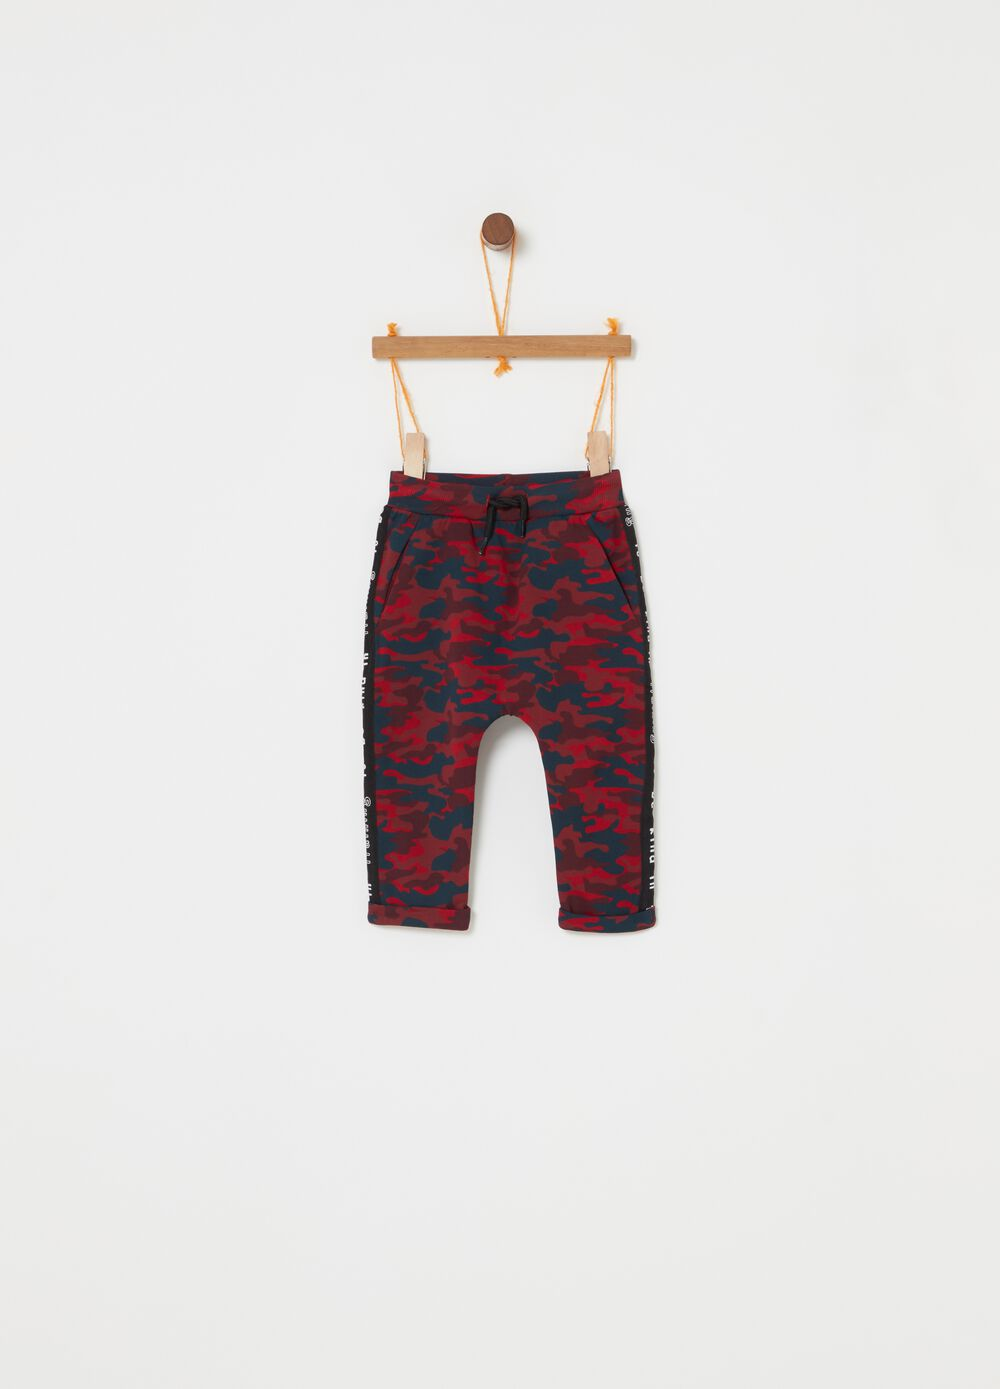 Camouflage trousers with elasticated waist band